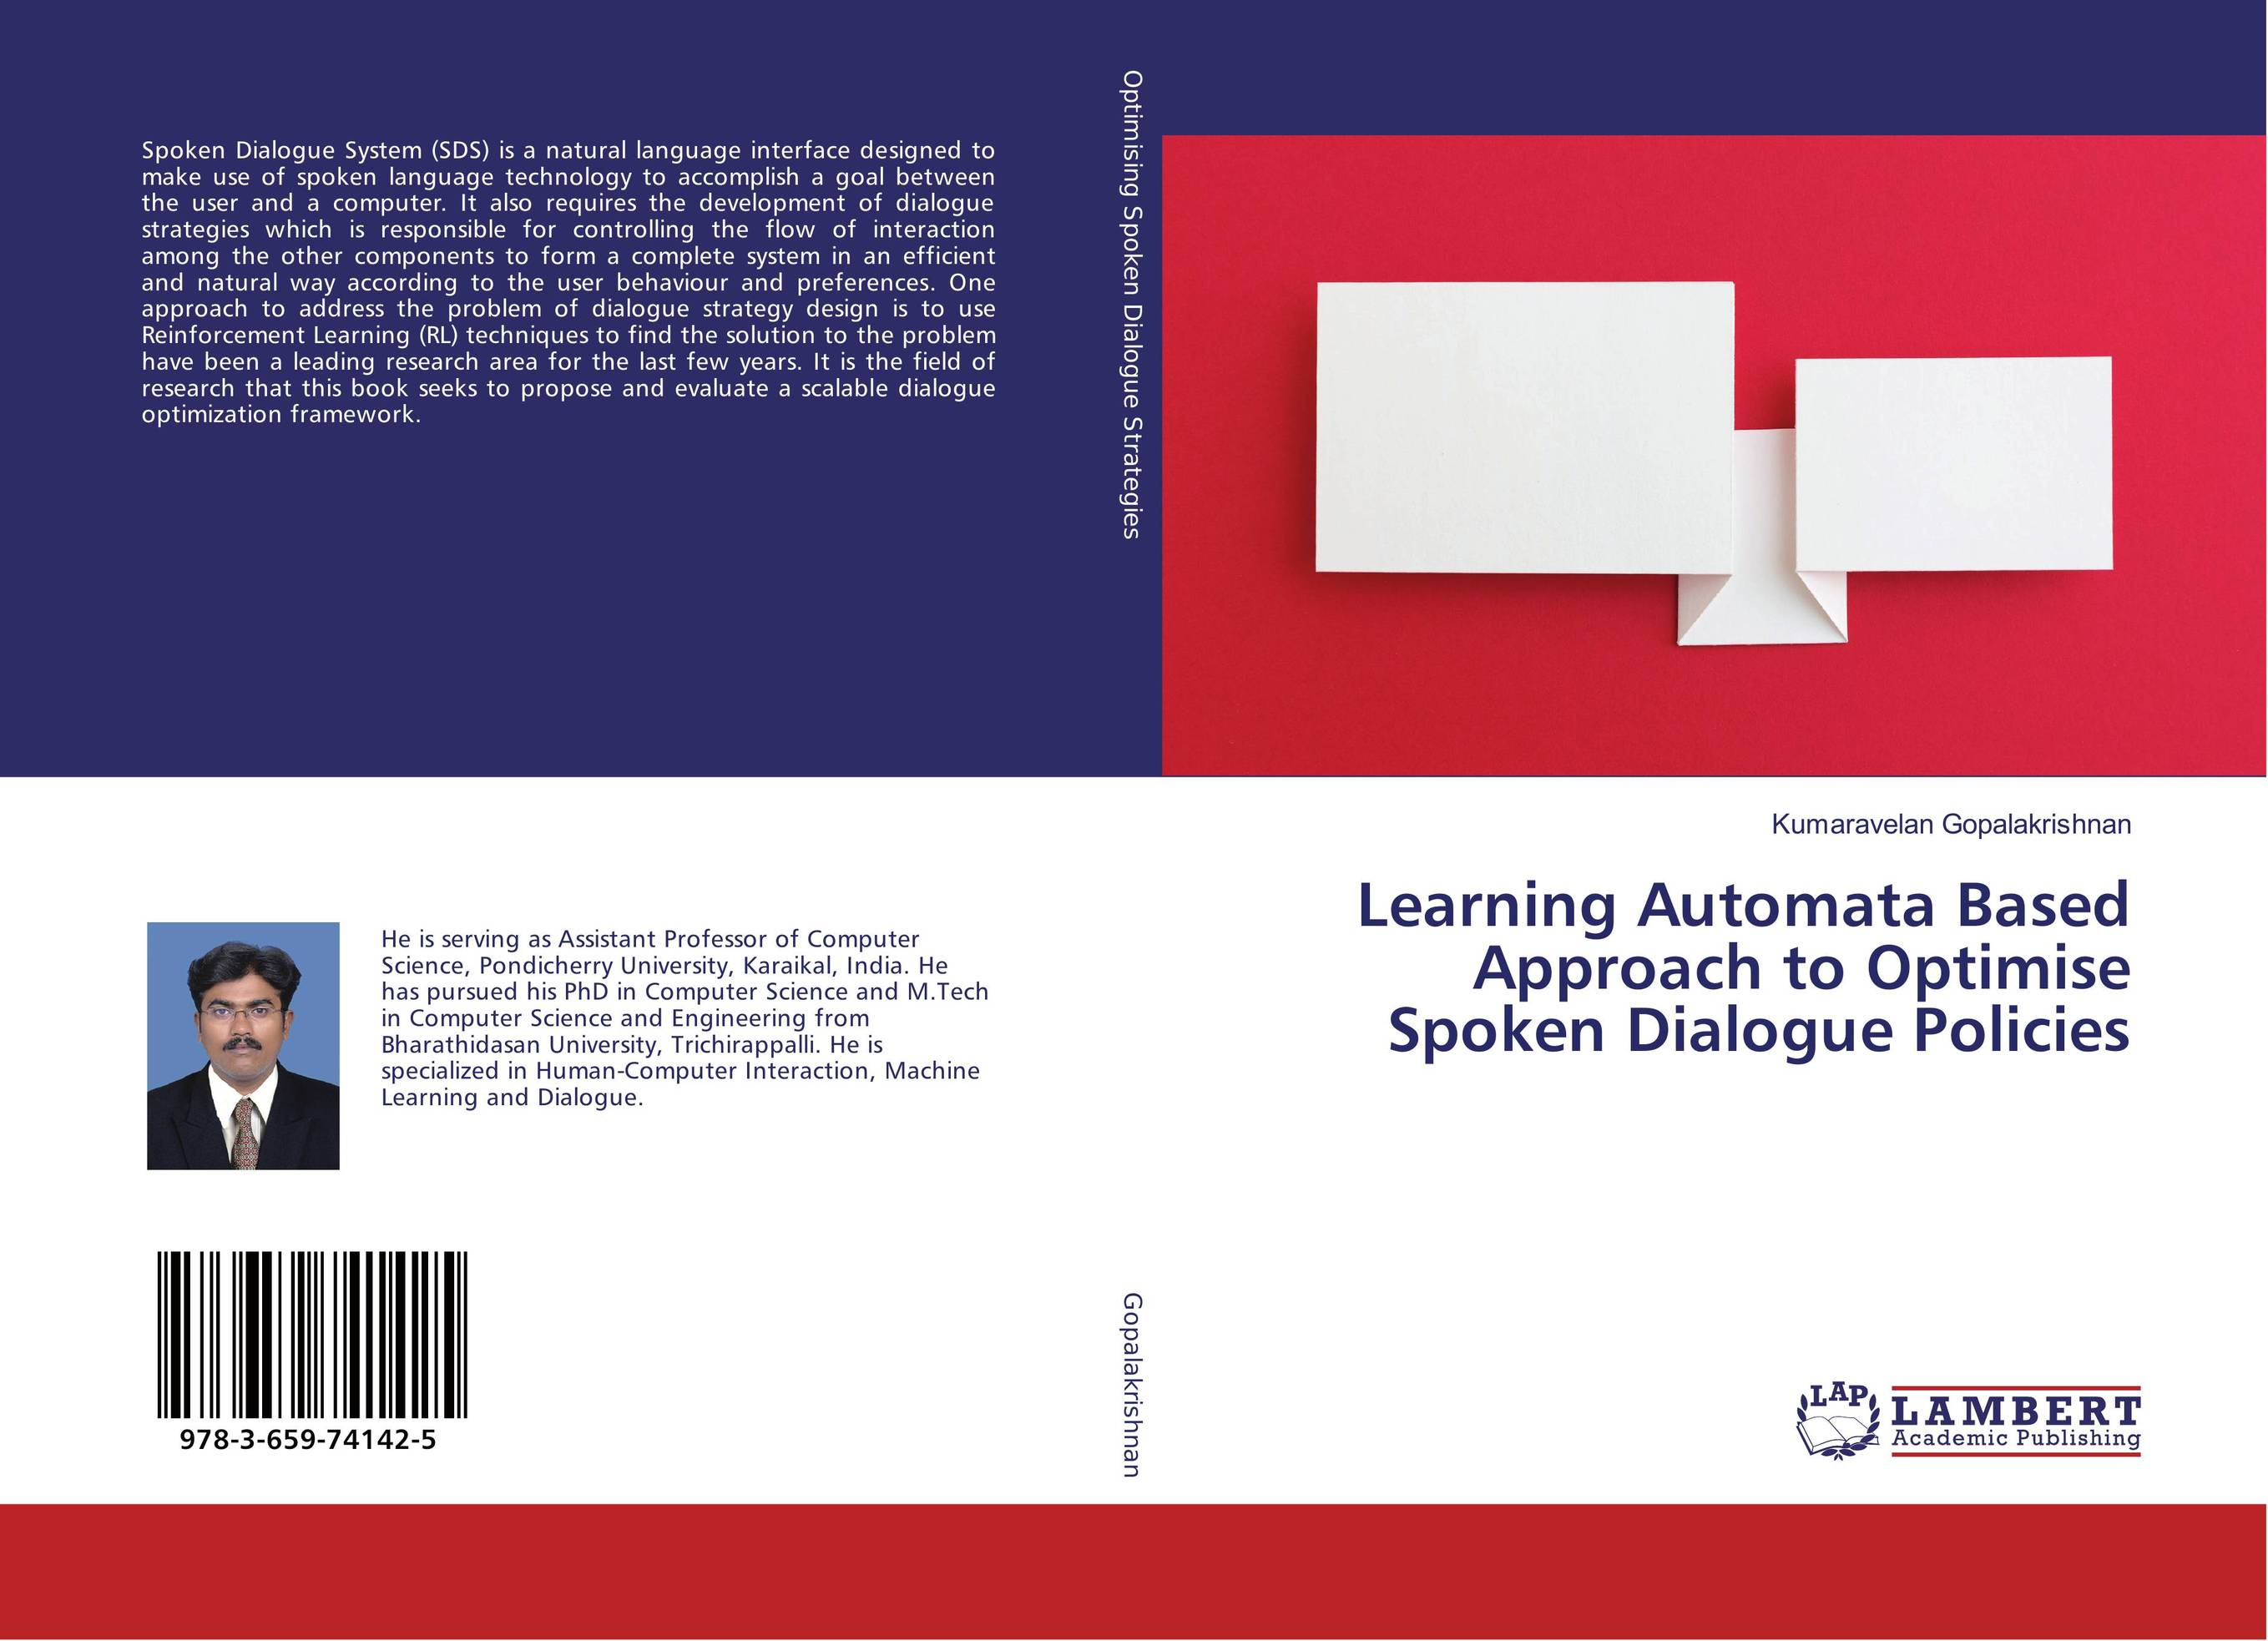 Learning Automata Based Approach to Optimise Spoken Dialogue Policies